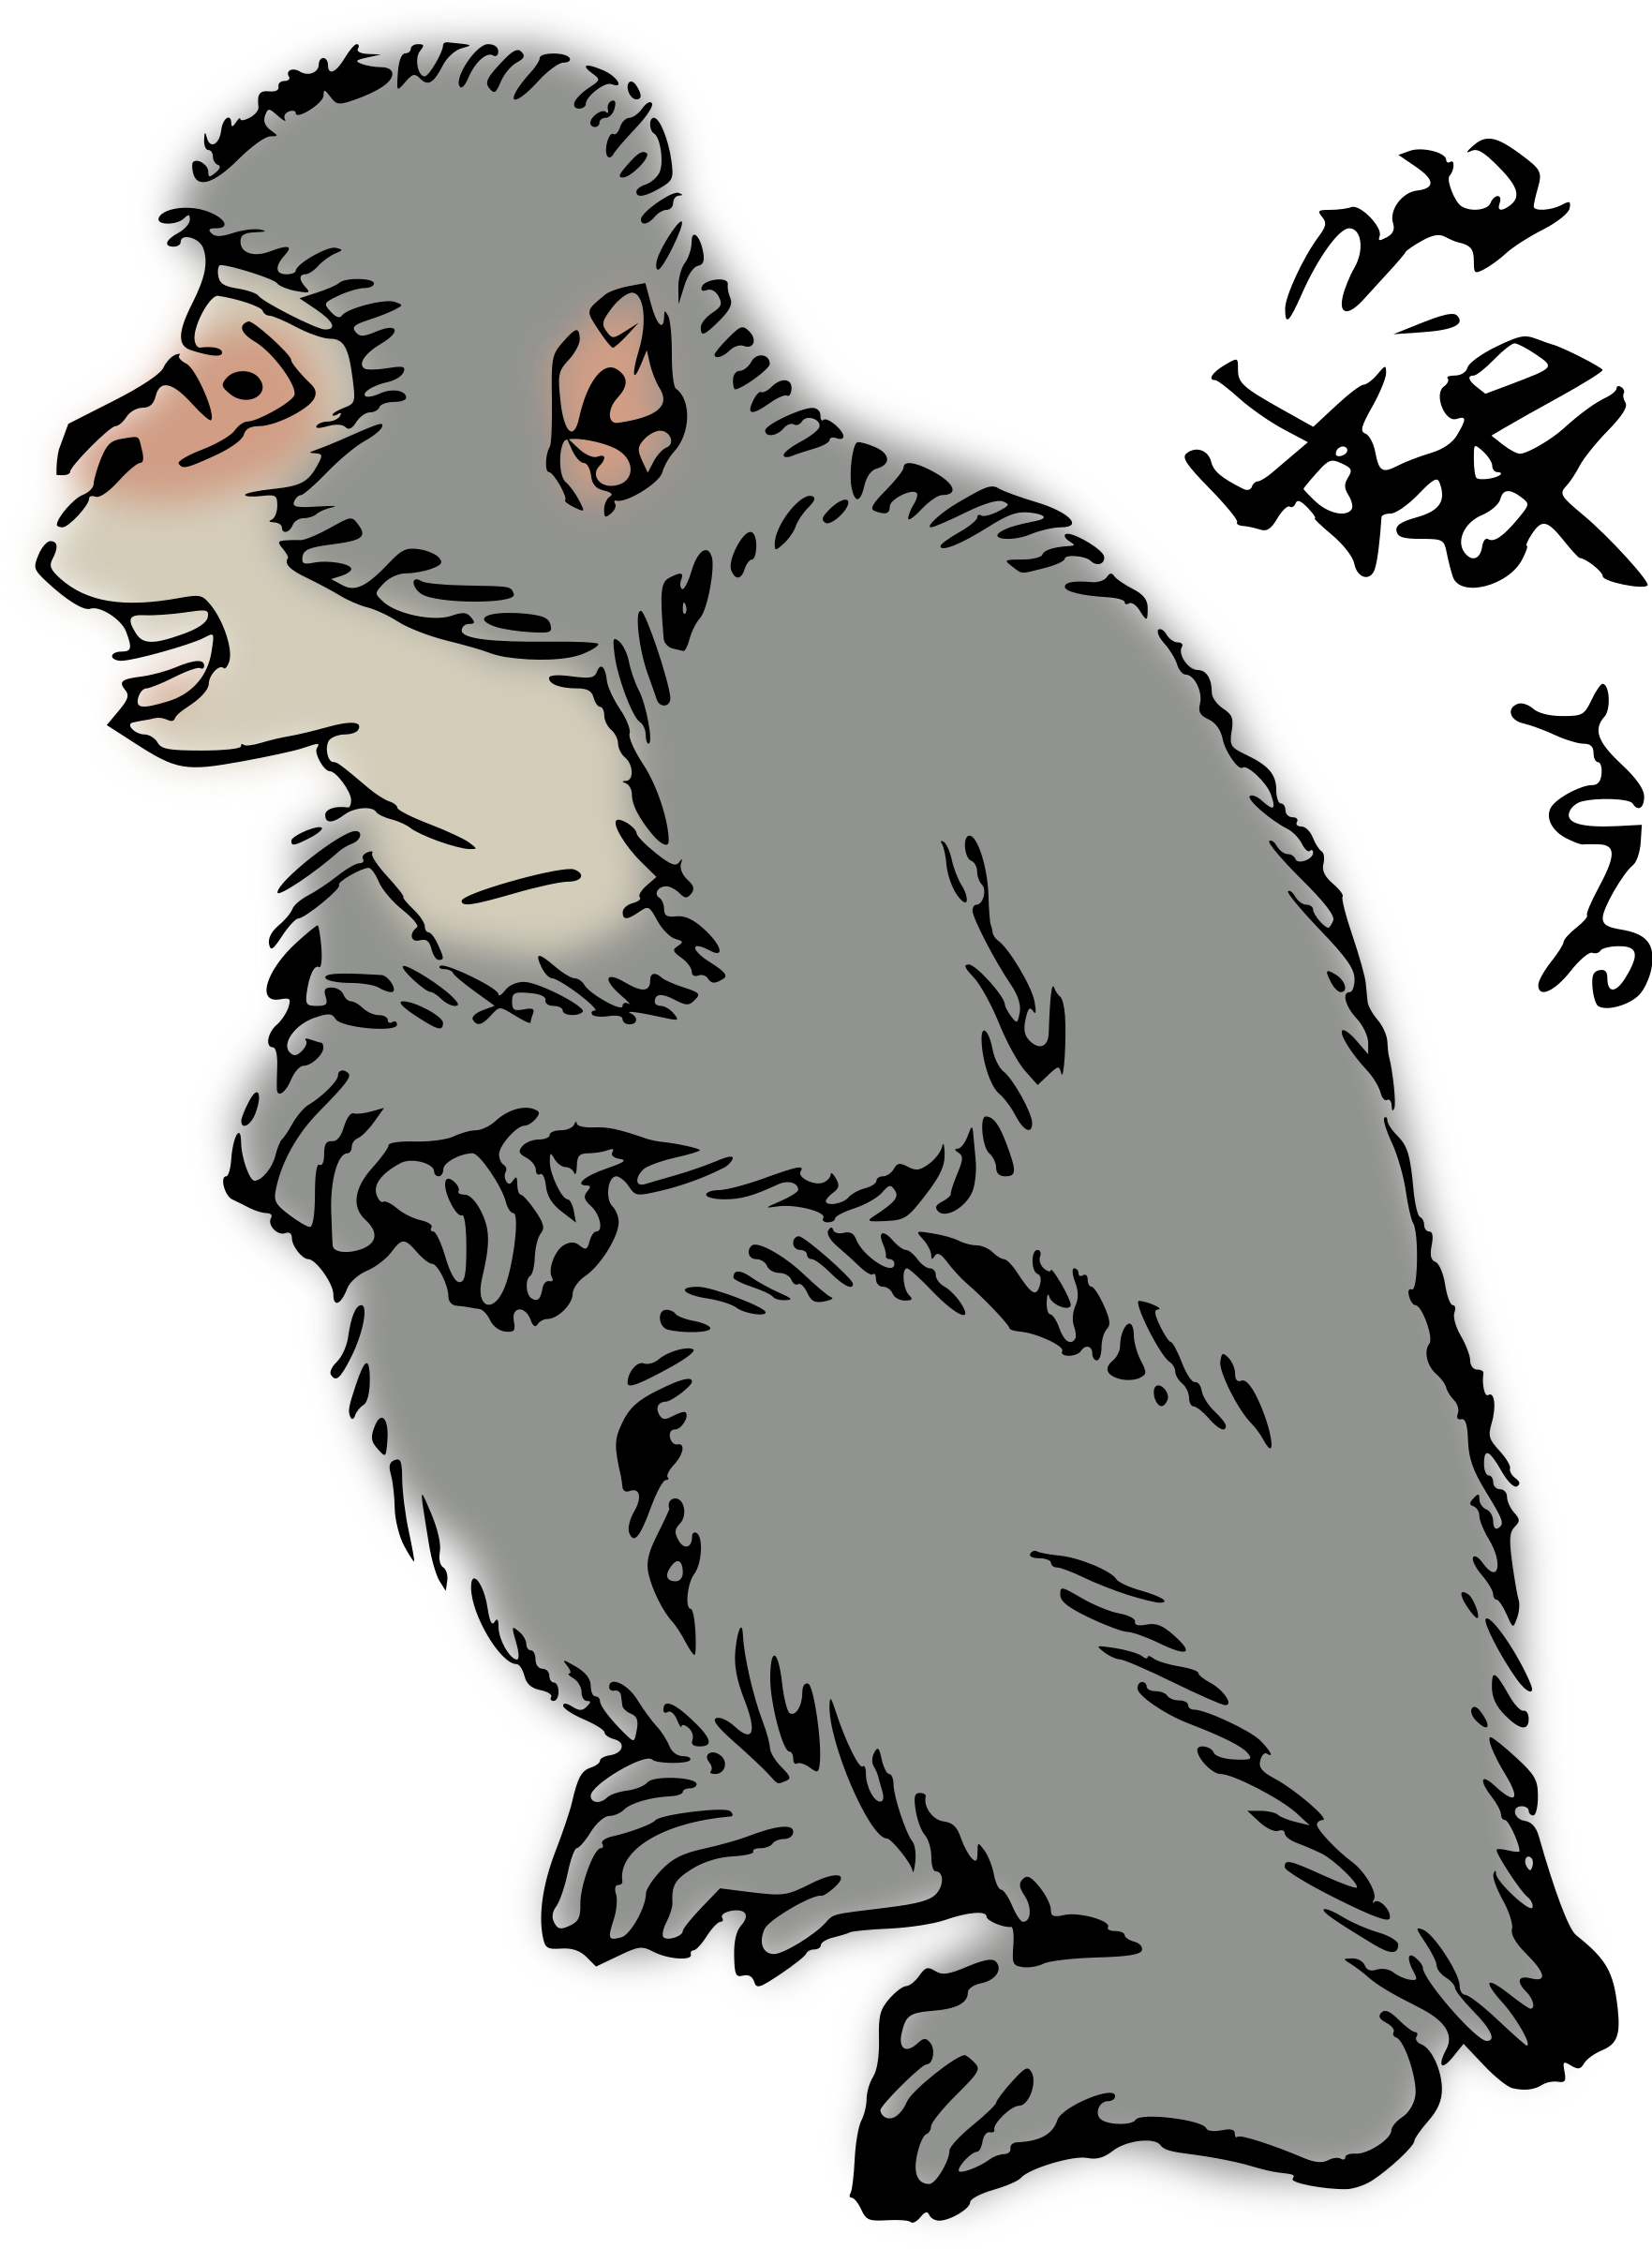 Macaque clipart #8, Download drawings